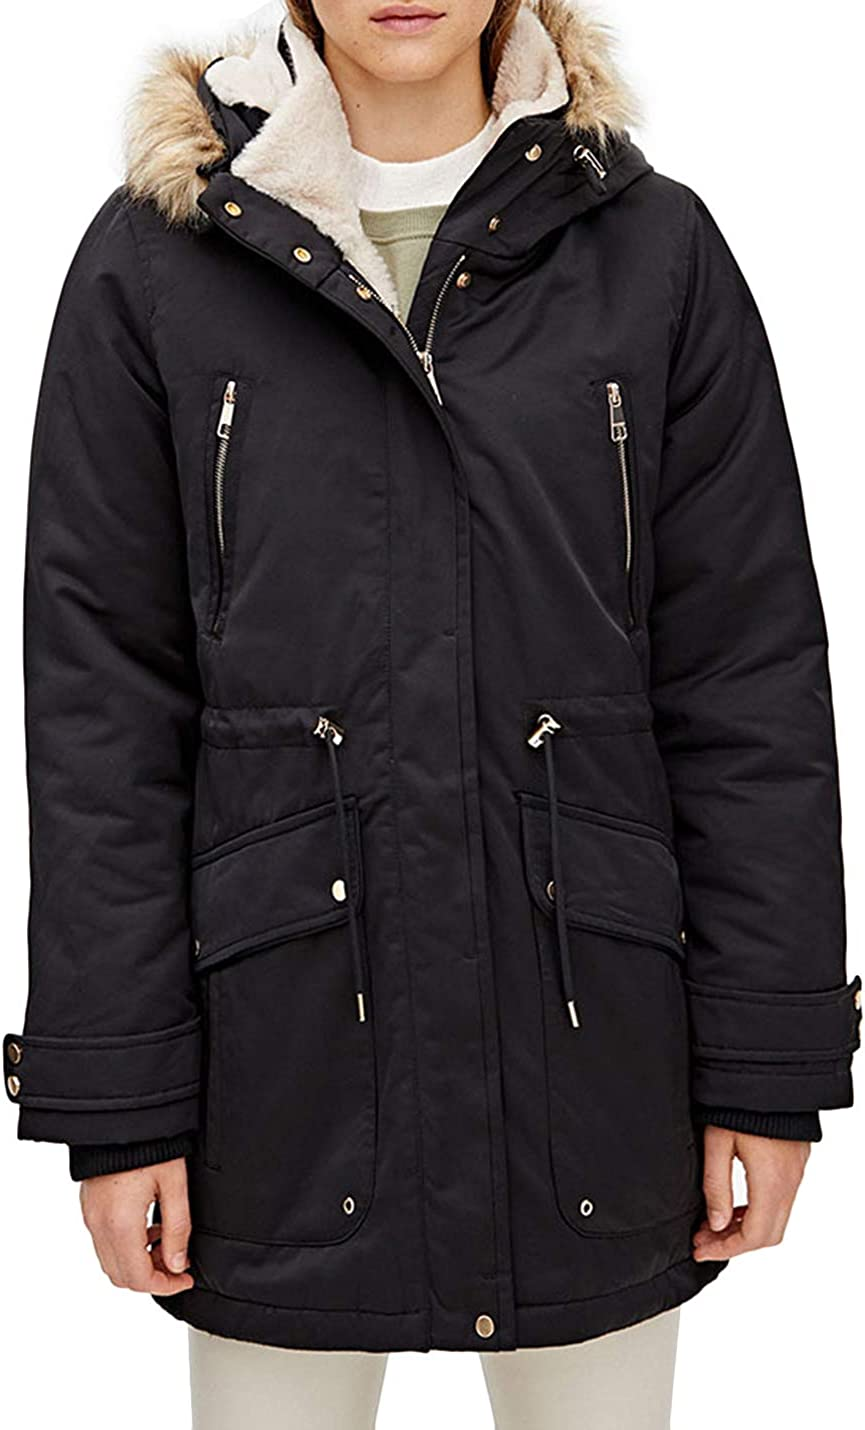 HaoMay Women's Thick Sherpa Lined Hooded Parkas Mid Long Jacket Windbreakers